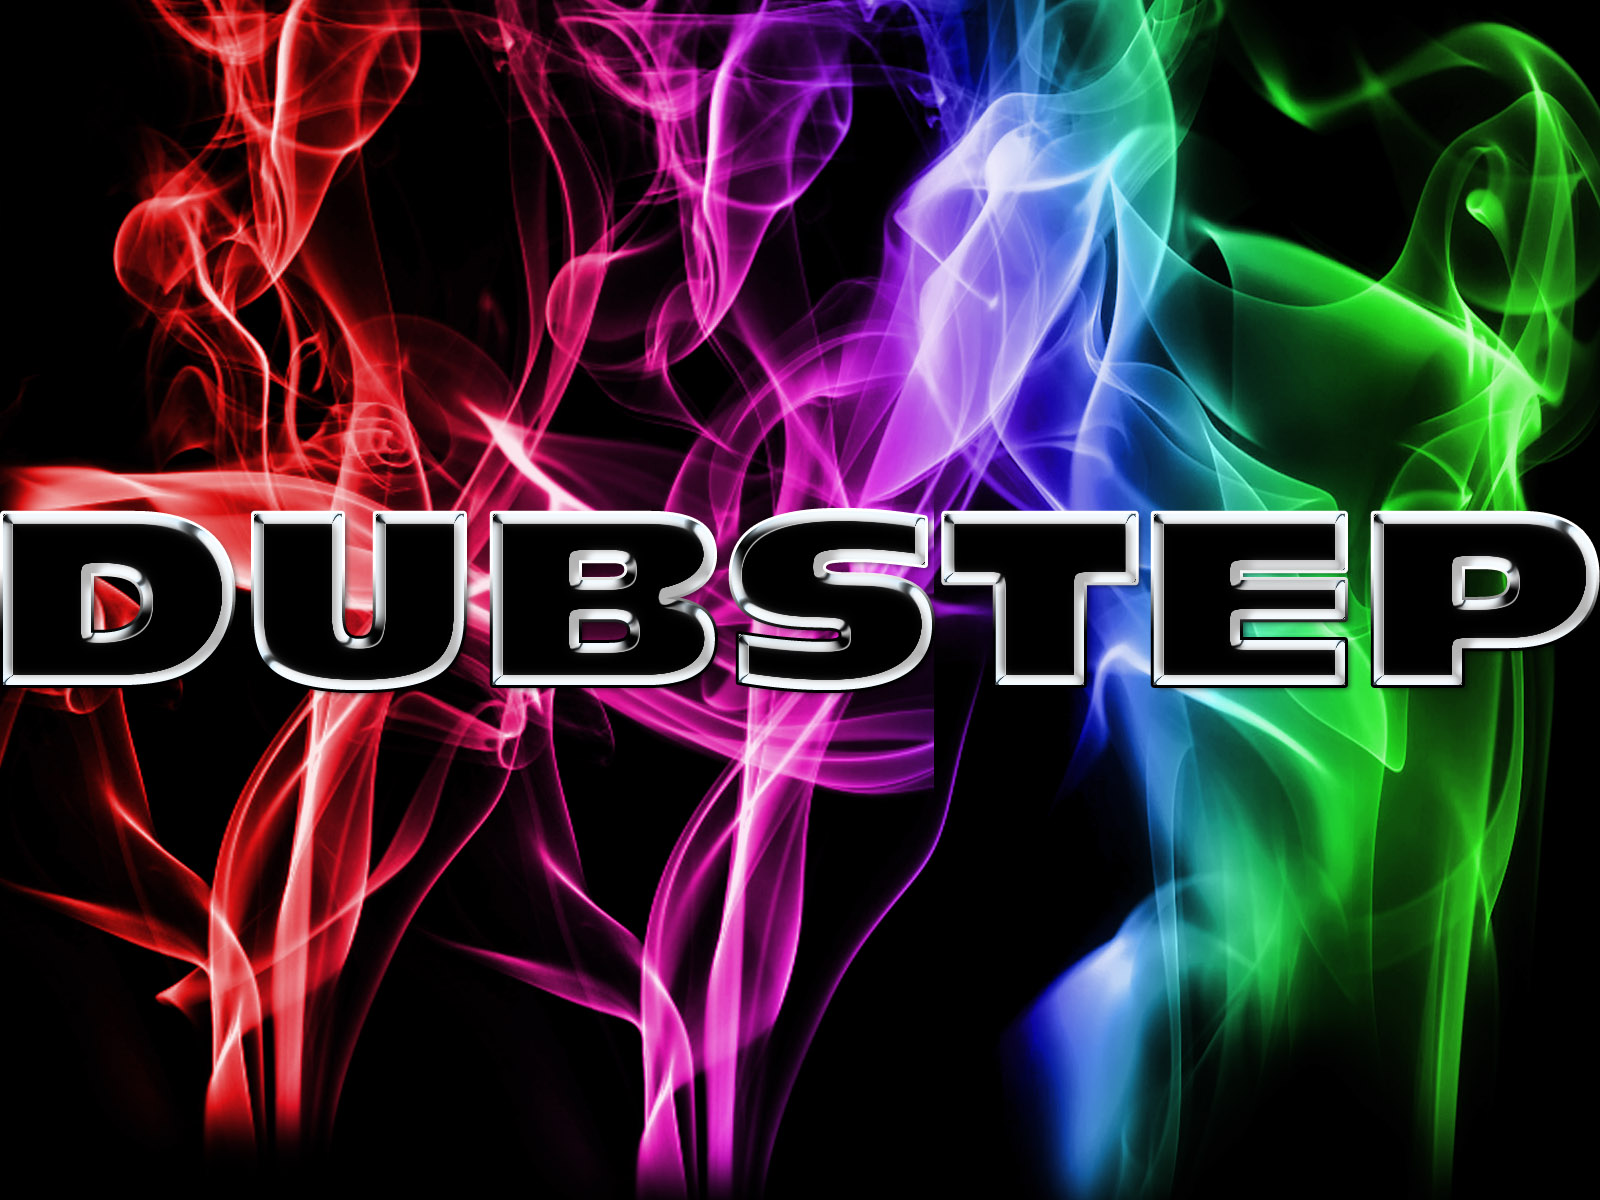 What BPM Is Dubstep?